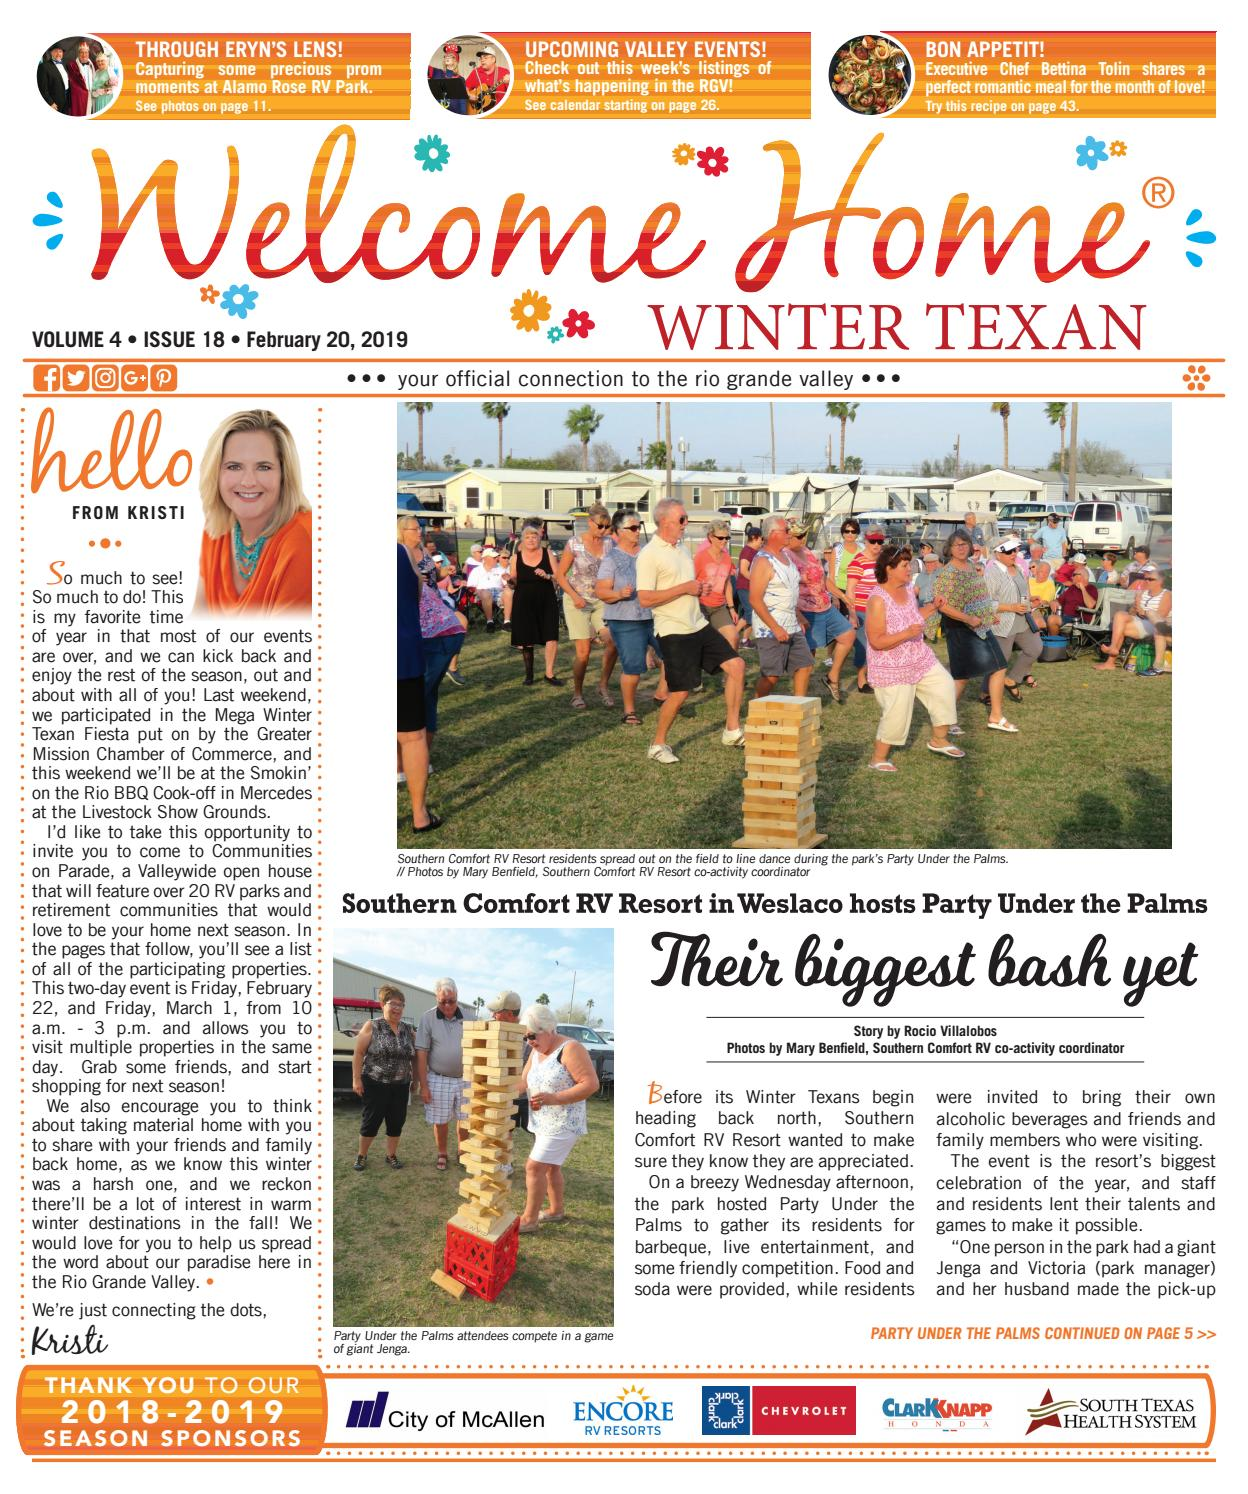 a6dd35e52fe Welcome Home Winter Texan   Vol 4 Issue 18   February 20